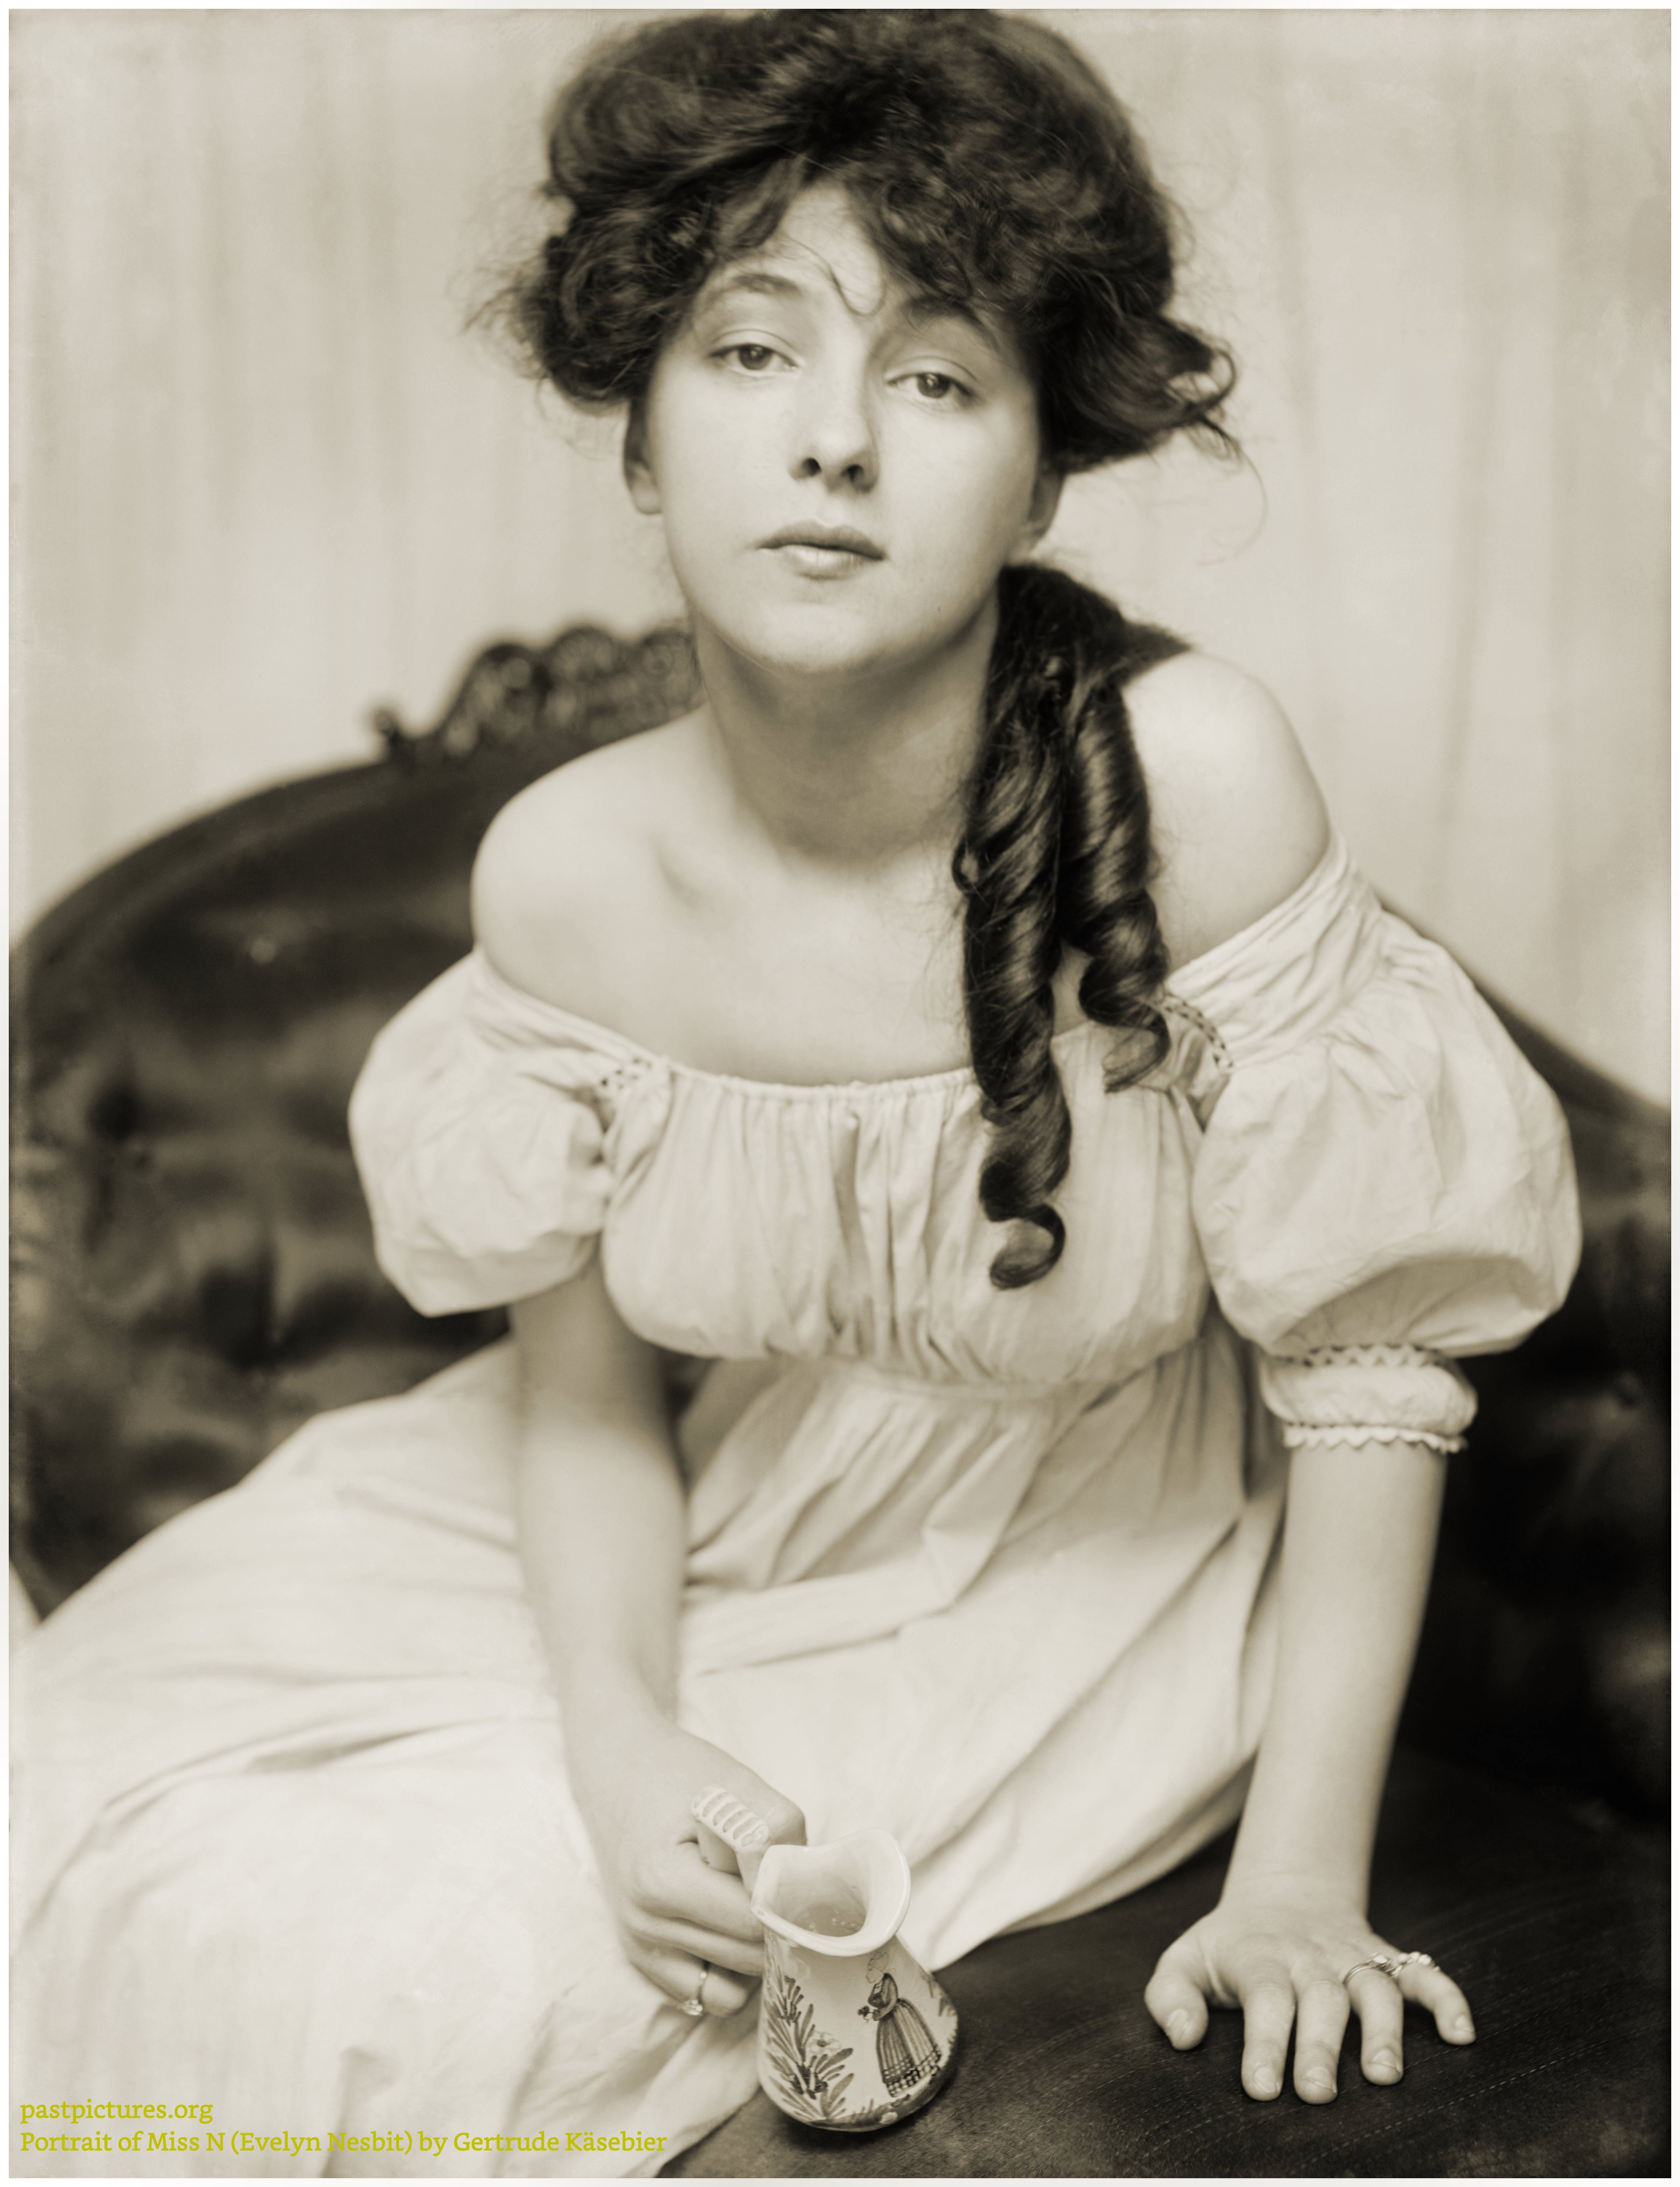 Portrait of Miss N (Evelyn Nesbit) by Gertrude Käsebier 1902